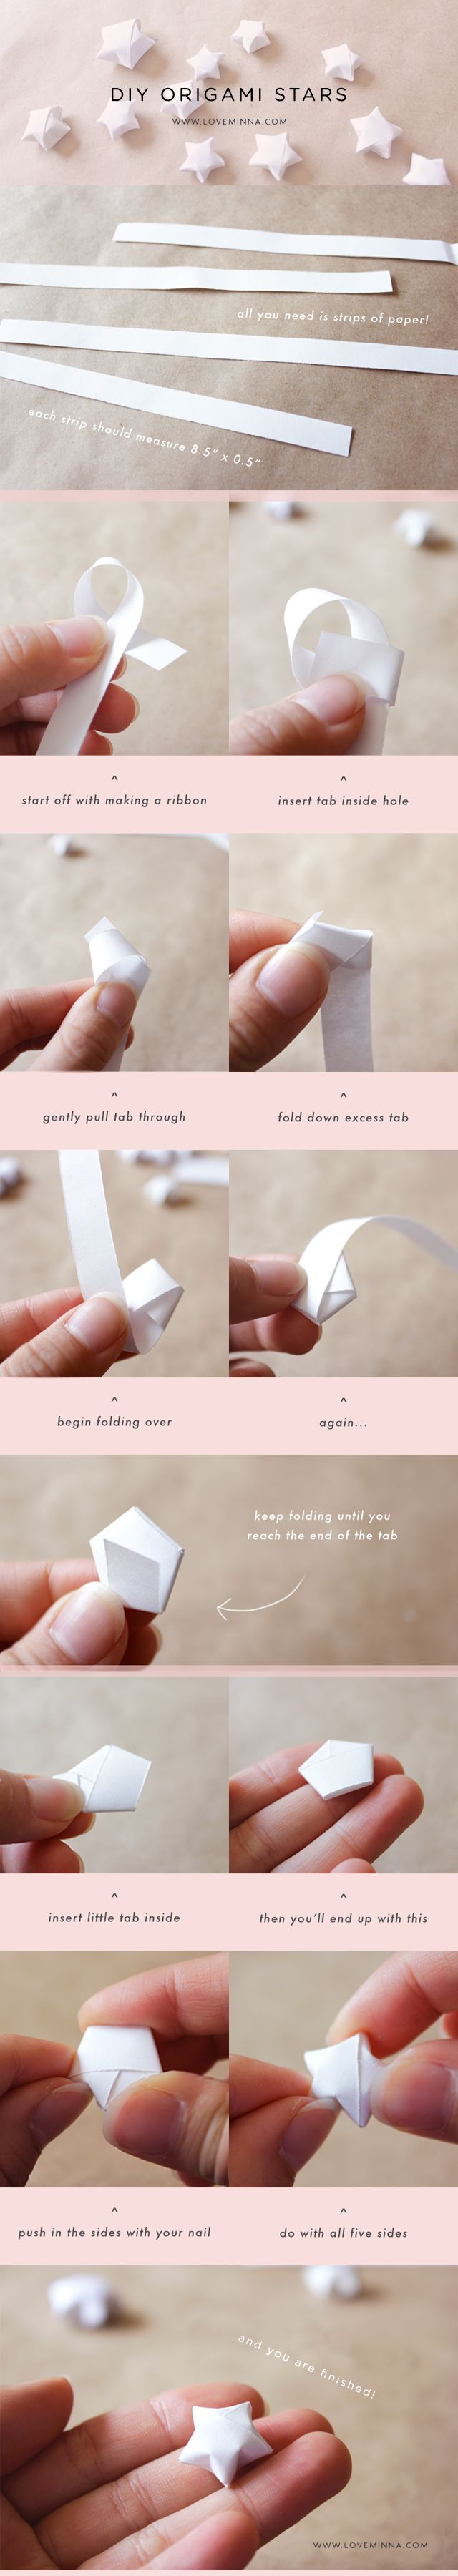 Here is my tutorial on how to make cute little origami stars! I tried my  best to make the steps as simple as possible! It takes some practice to  make the stars look perfect, so don't be discouraged if you don't get it  the first time! You can change the size of the stars by having thinner or  thicker paper strips. Good luck and enjoy!  — Love, Minna